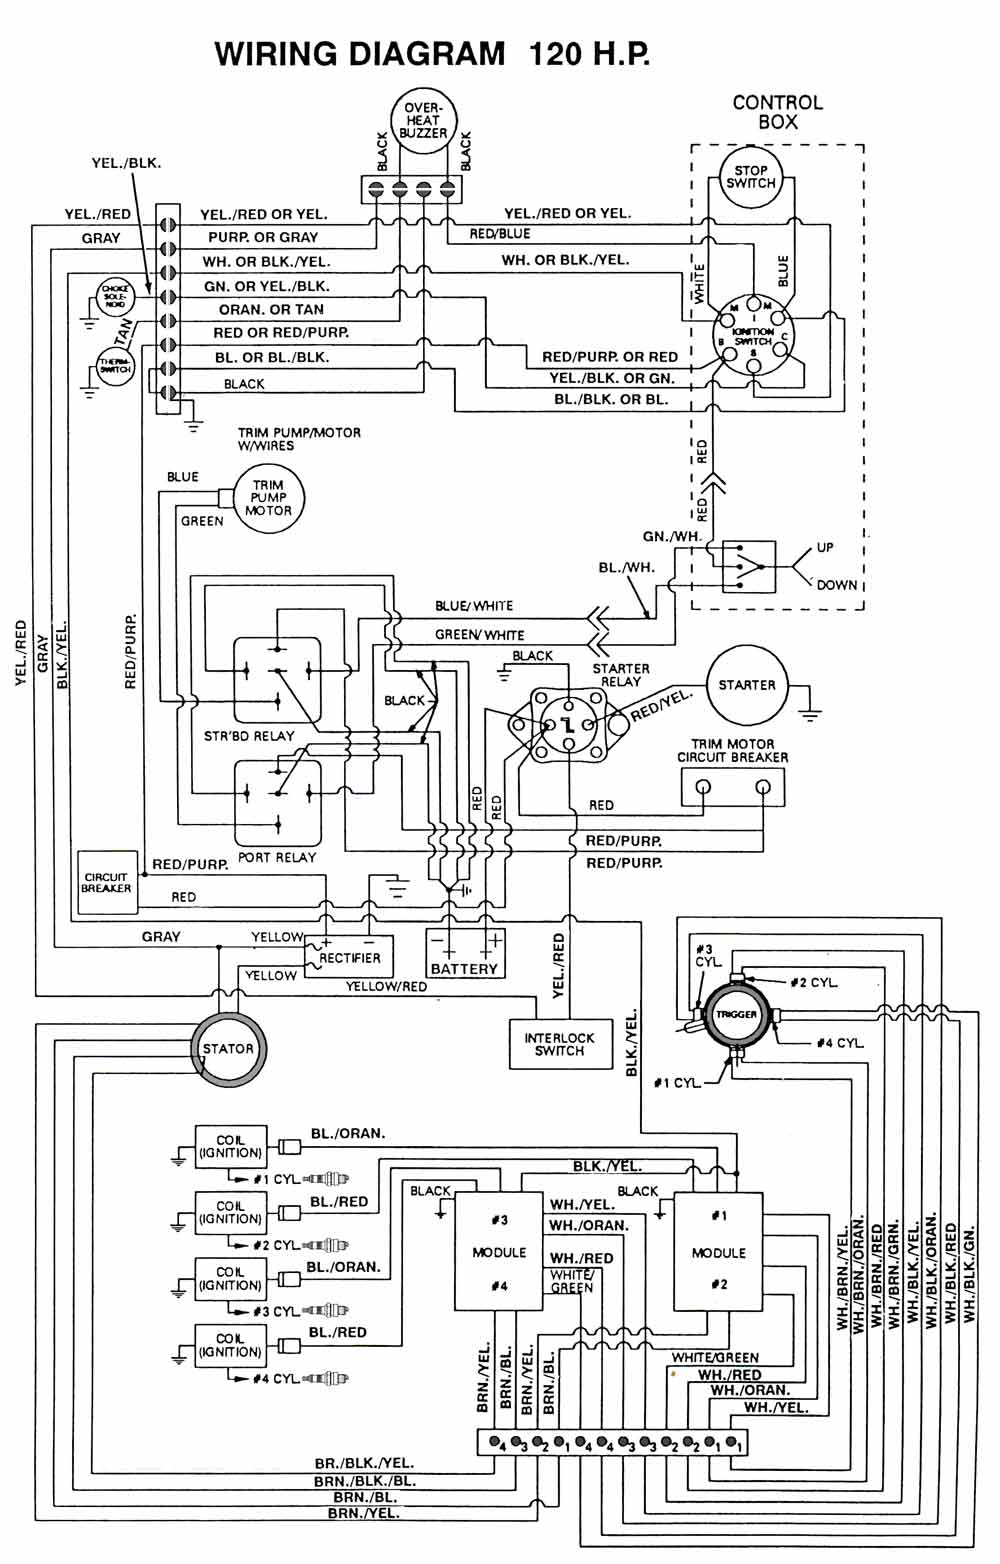 medium resolution of 50 hp force outboard wiring diagram trusted wiring diagram 35 hp mercury outboard wiring schematic 1989 force 50 hp wiring diagram